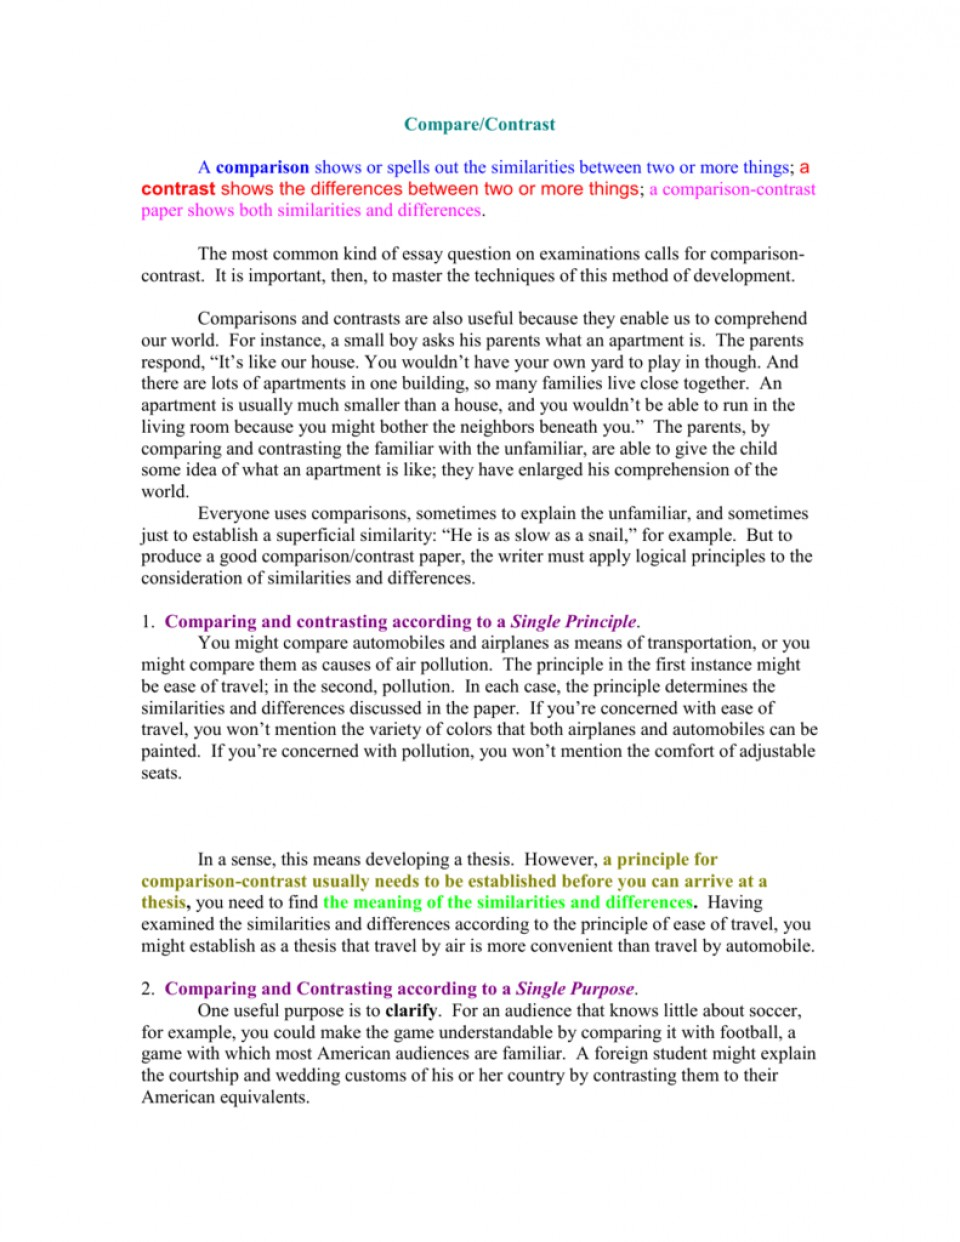 017 007777977 2 Compare And Contrast Essay Striking Example Examples College Level Topics 9th Grade For Students 960